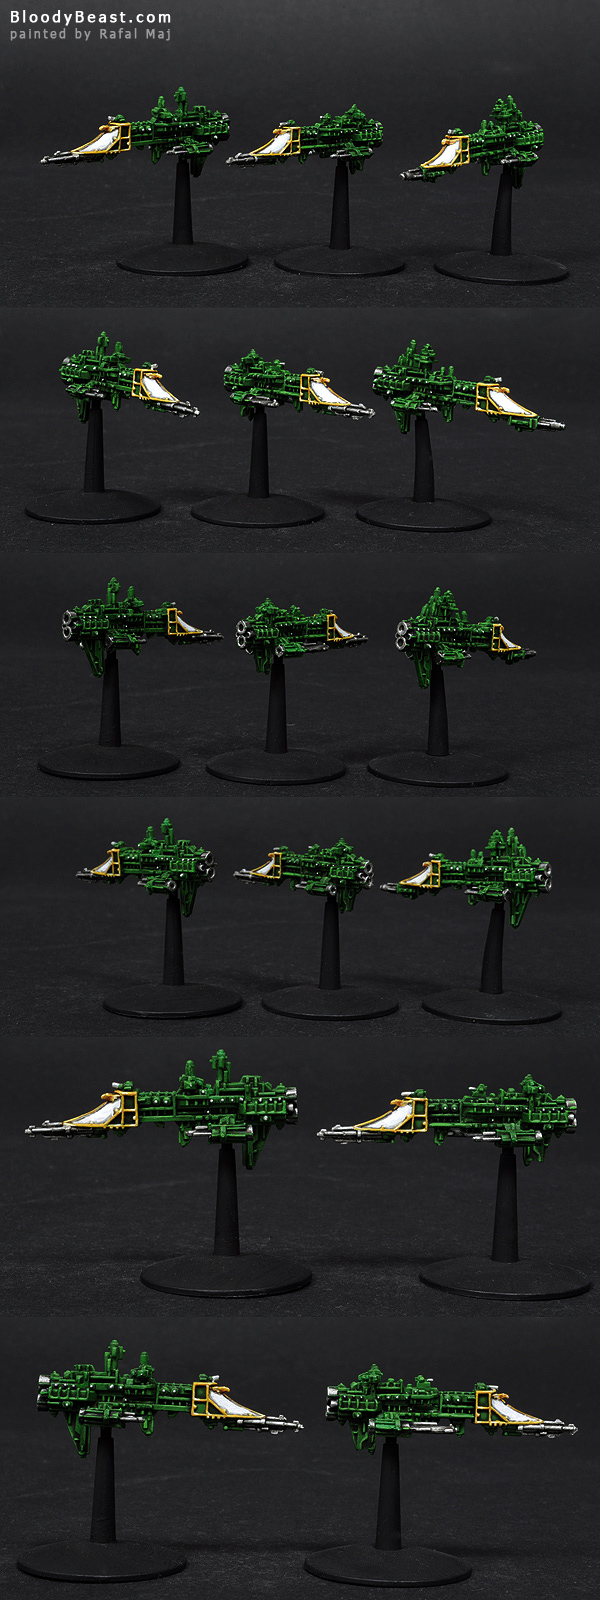 Imperial Firestorm Frigates painted by Rafal Maj (BloodyBeast.com)